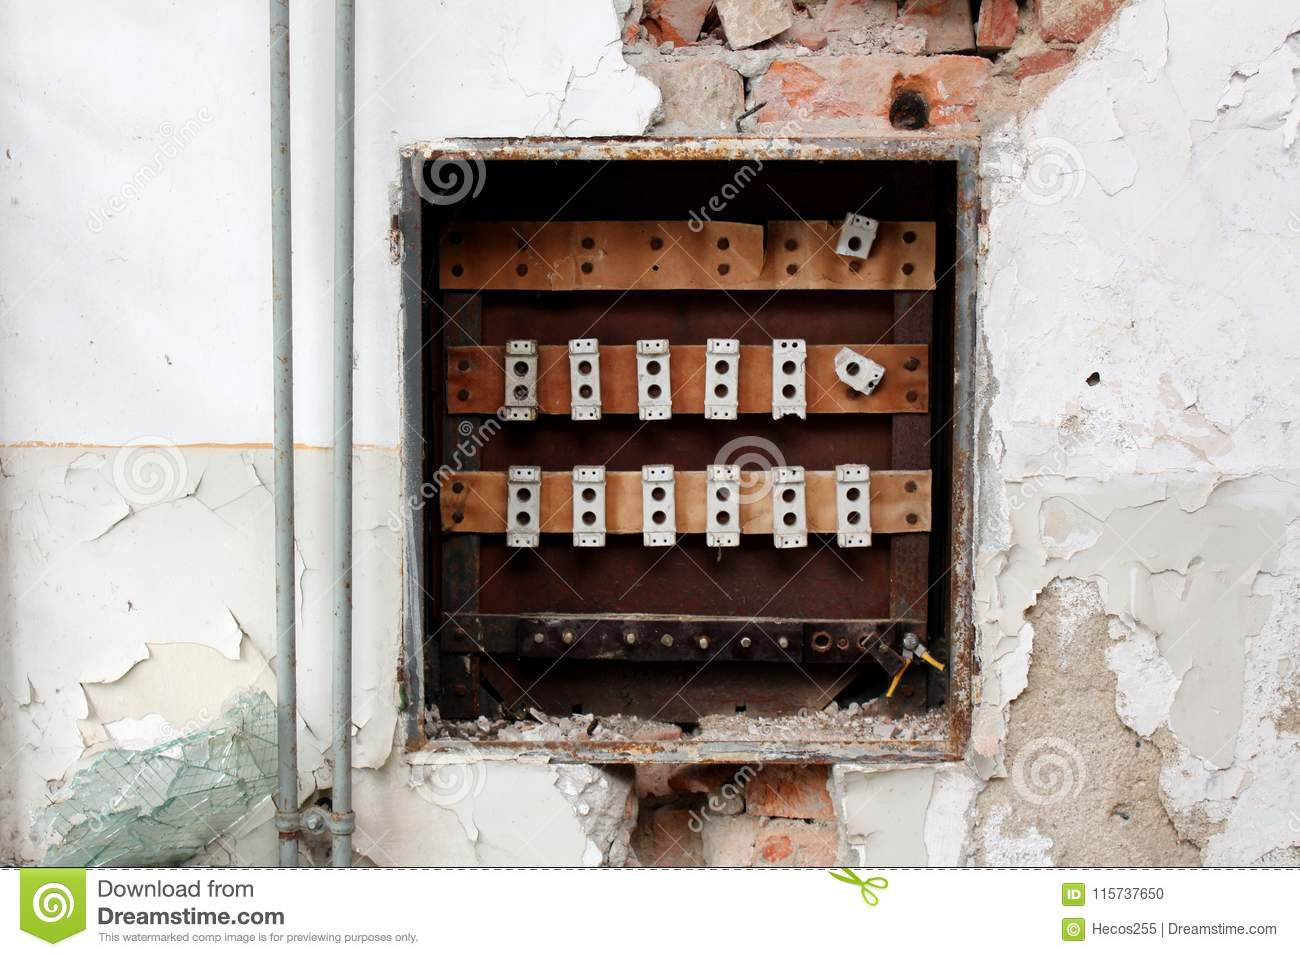 hight resolution of destroyed rusted old fuse box surrounded with crumbling wall visible bricks radiator pipes and broken glass